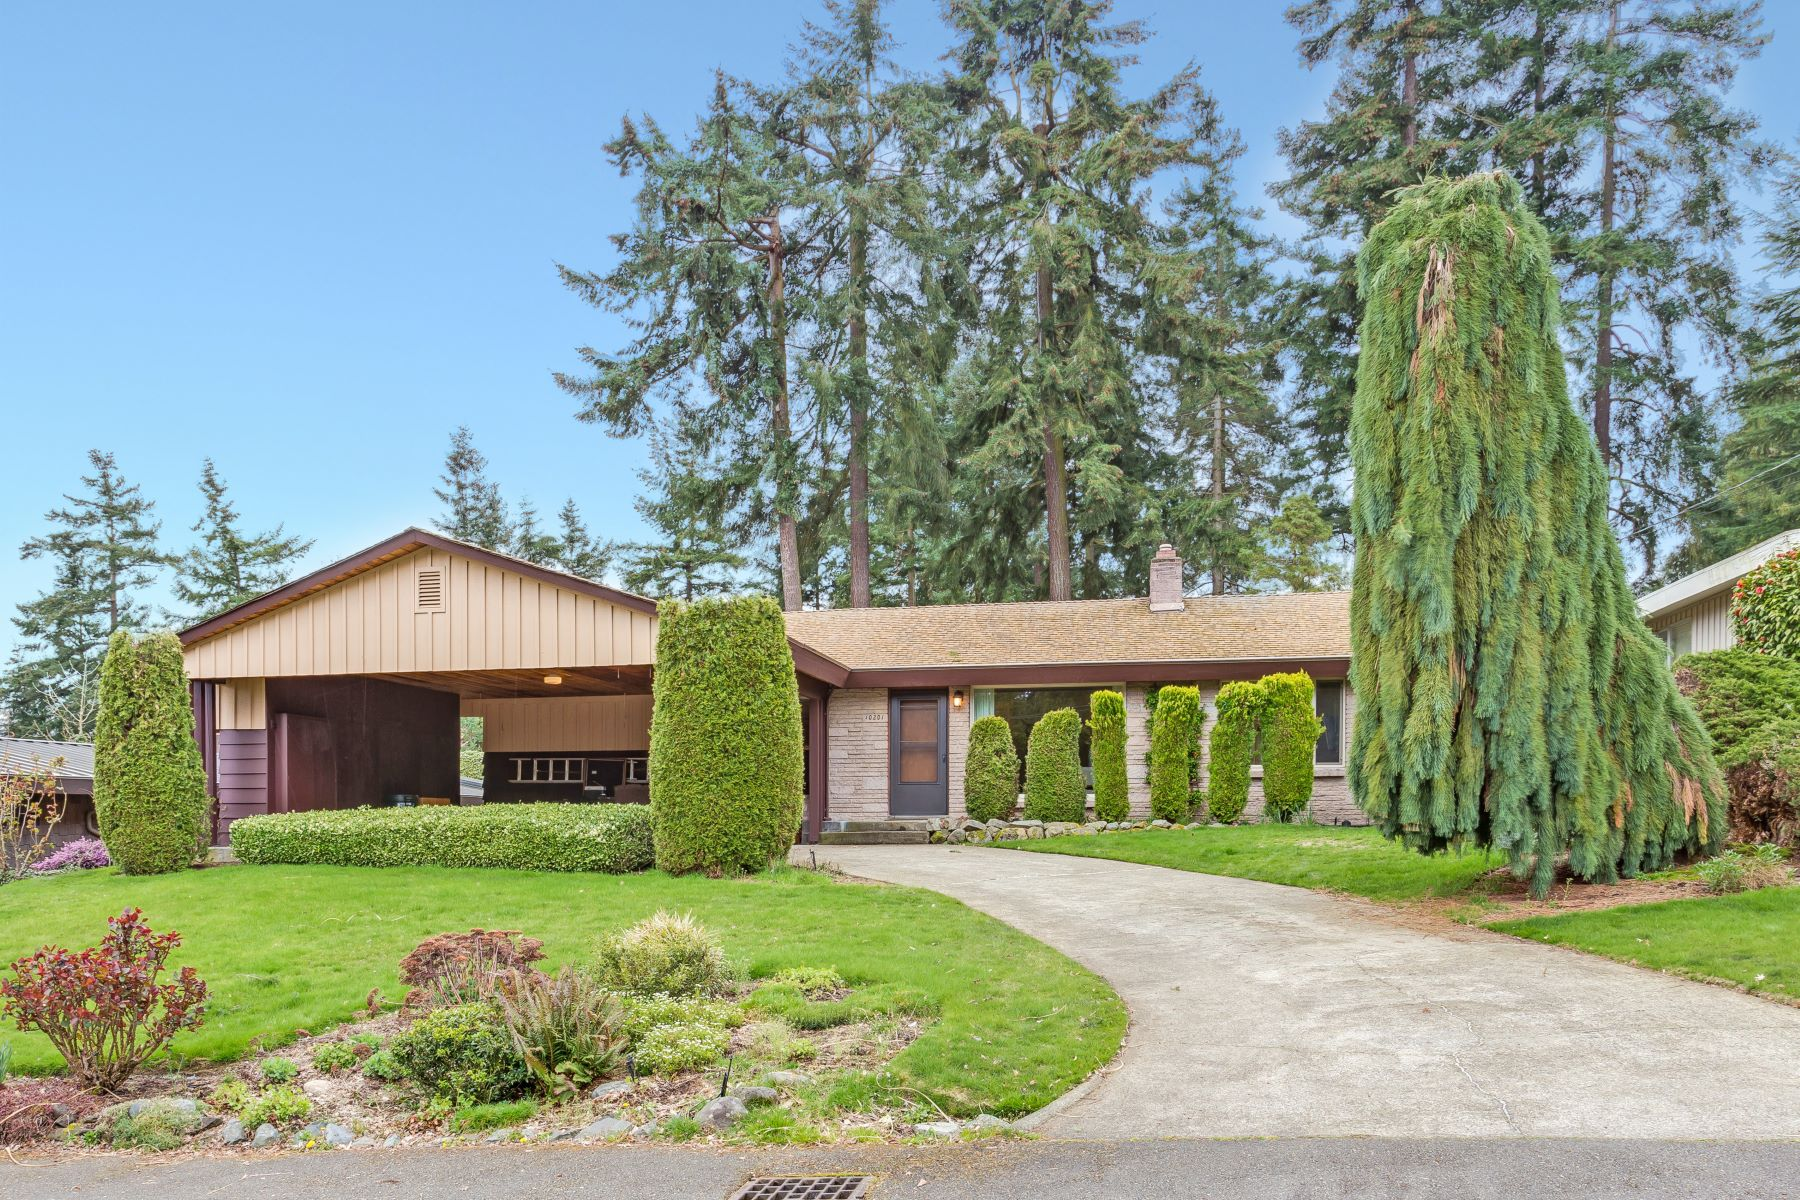 Single Family Home for Sale at Estate of Noretta Williams 10201 NE 23rd St Bellevue, Washington, 98004 United States